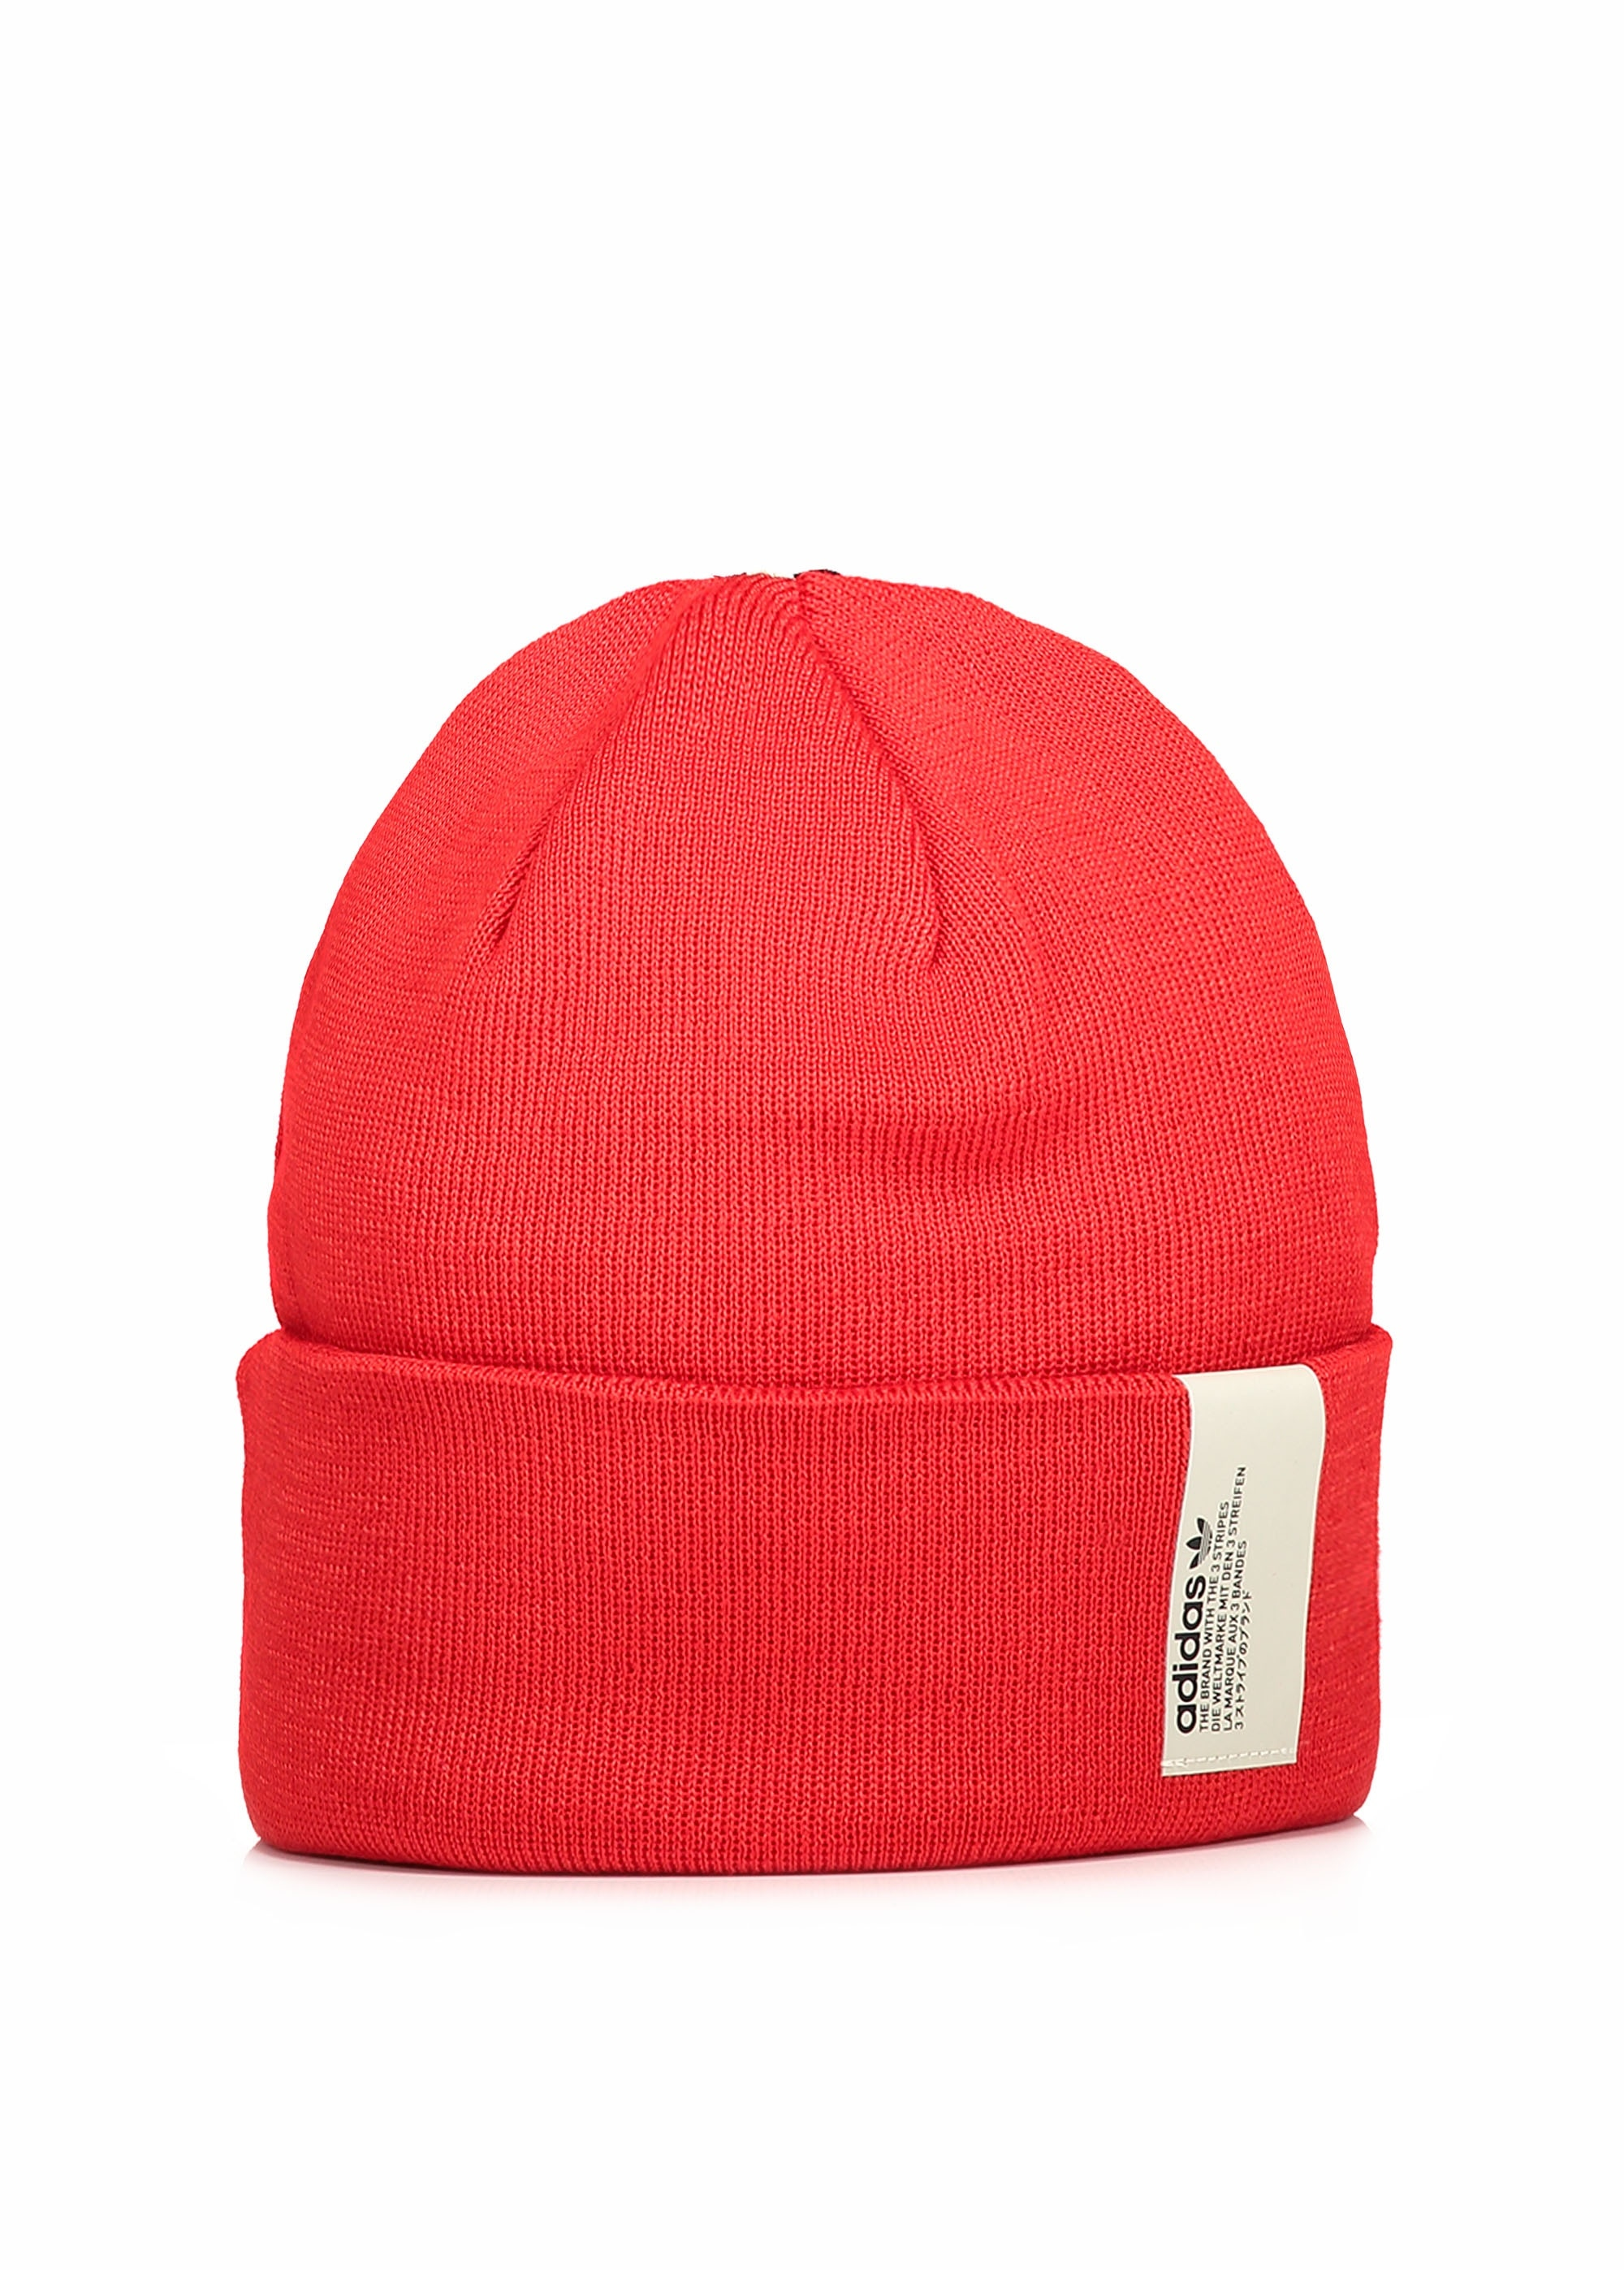 92fd4aec6b0 adidas Originals Apparel NMD Beanie - Red - Headwear from Triads UK